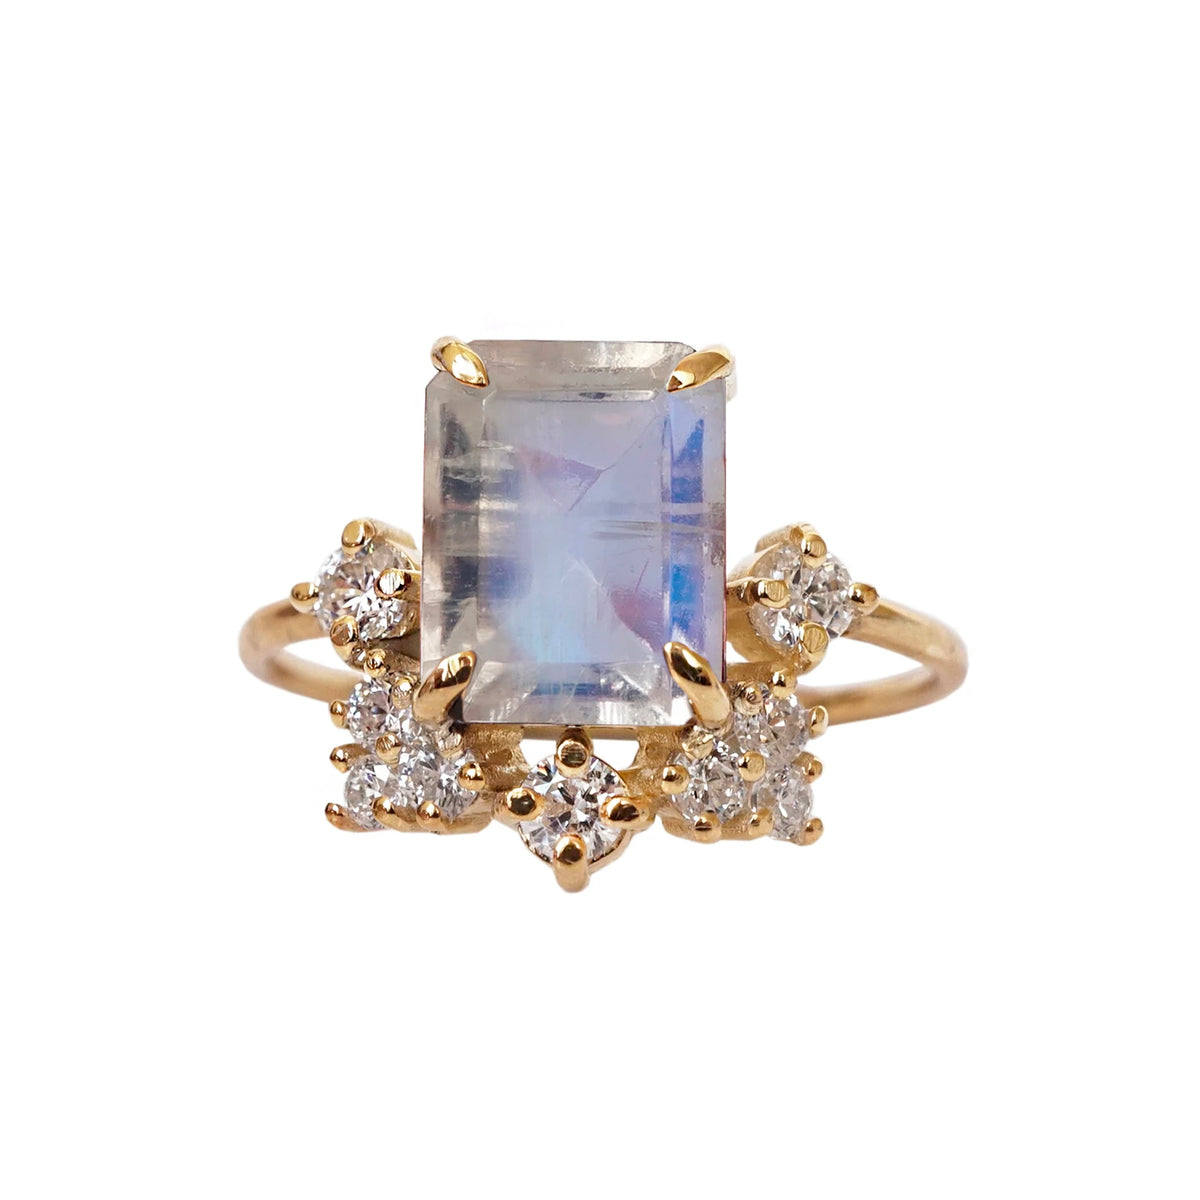 Bordeaux Moonstone Ring